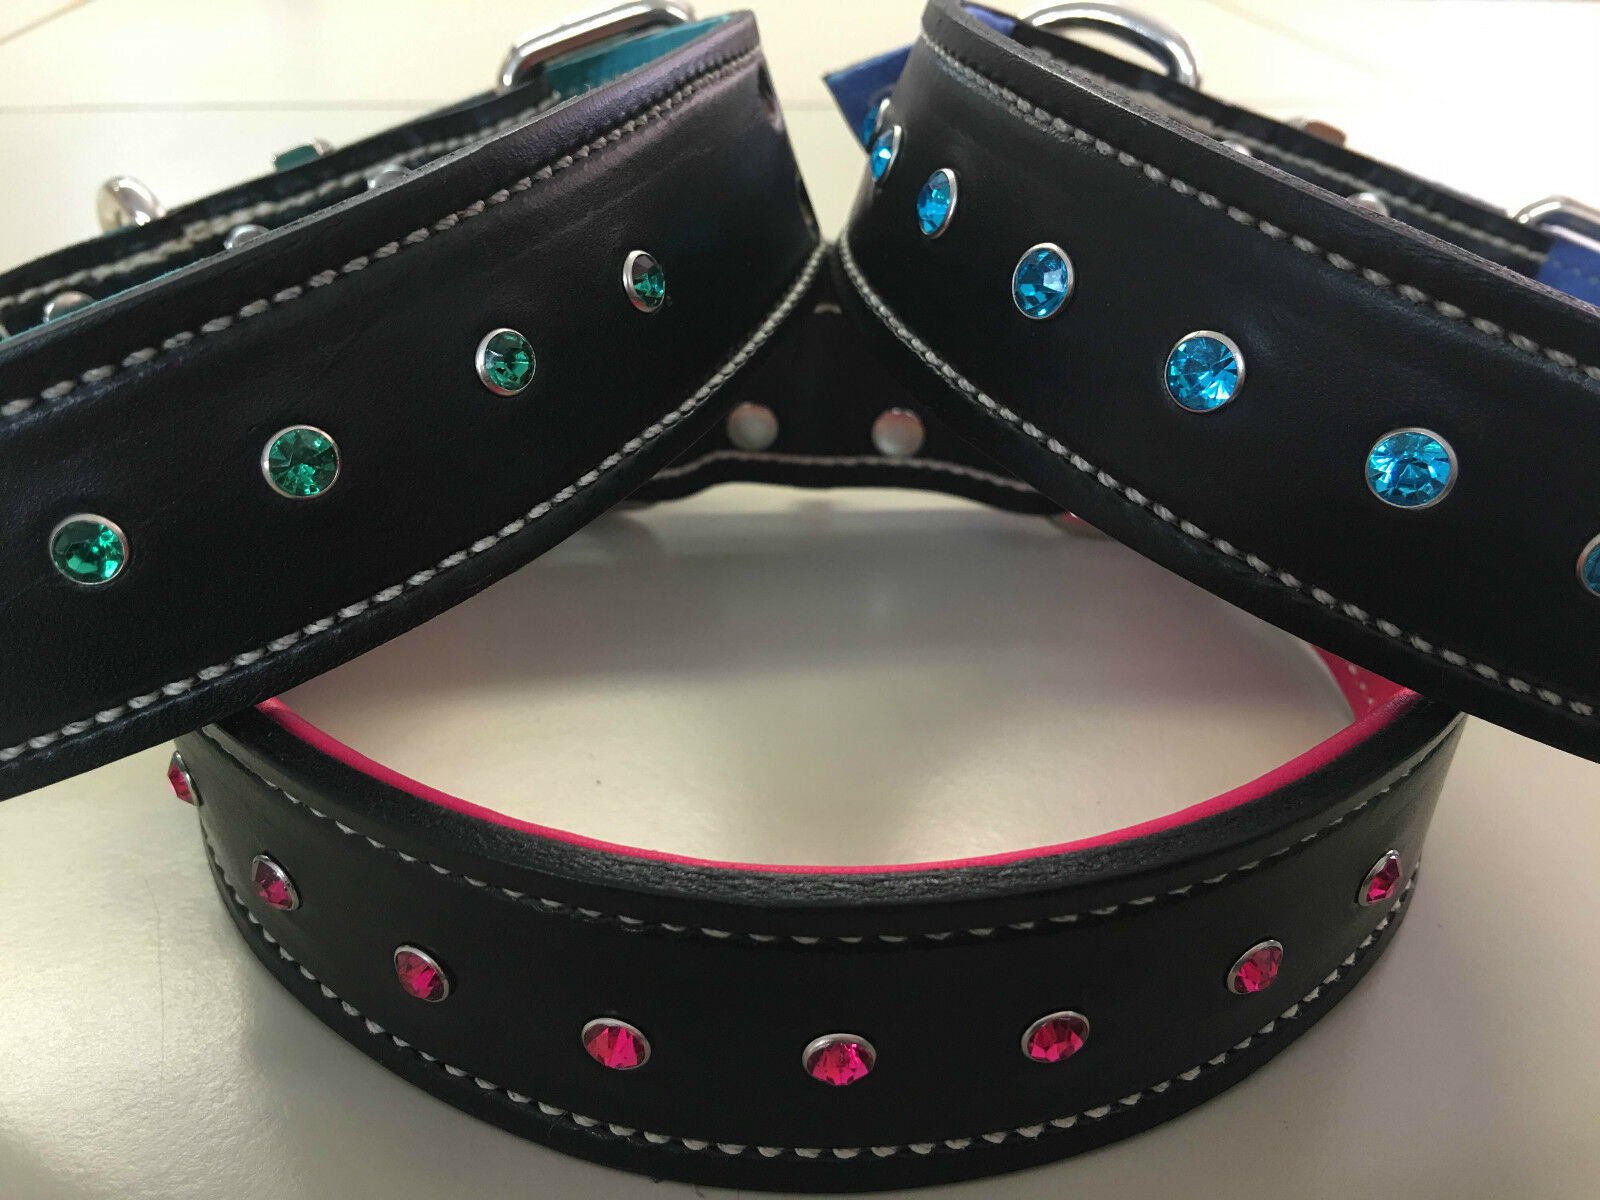 XX-Large nero Leather Dog Collar & Soft rosa, blu or verde Inner Lining & Gems